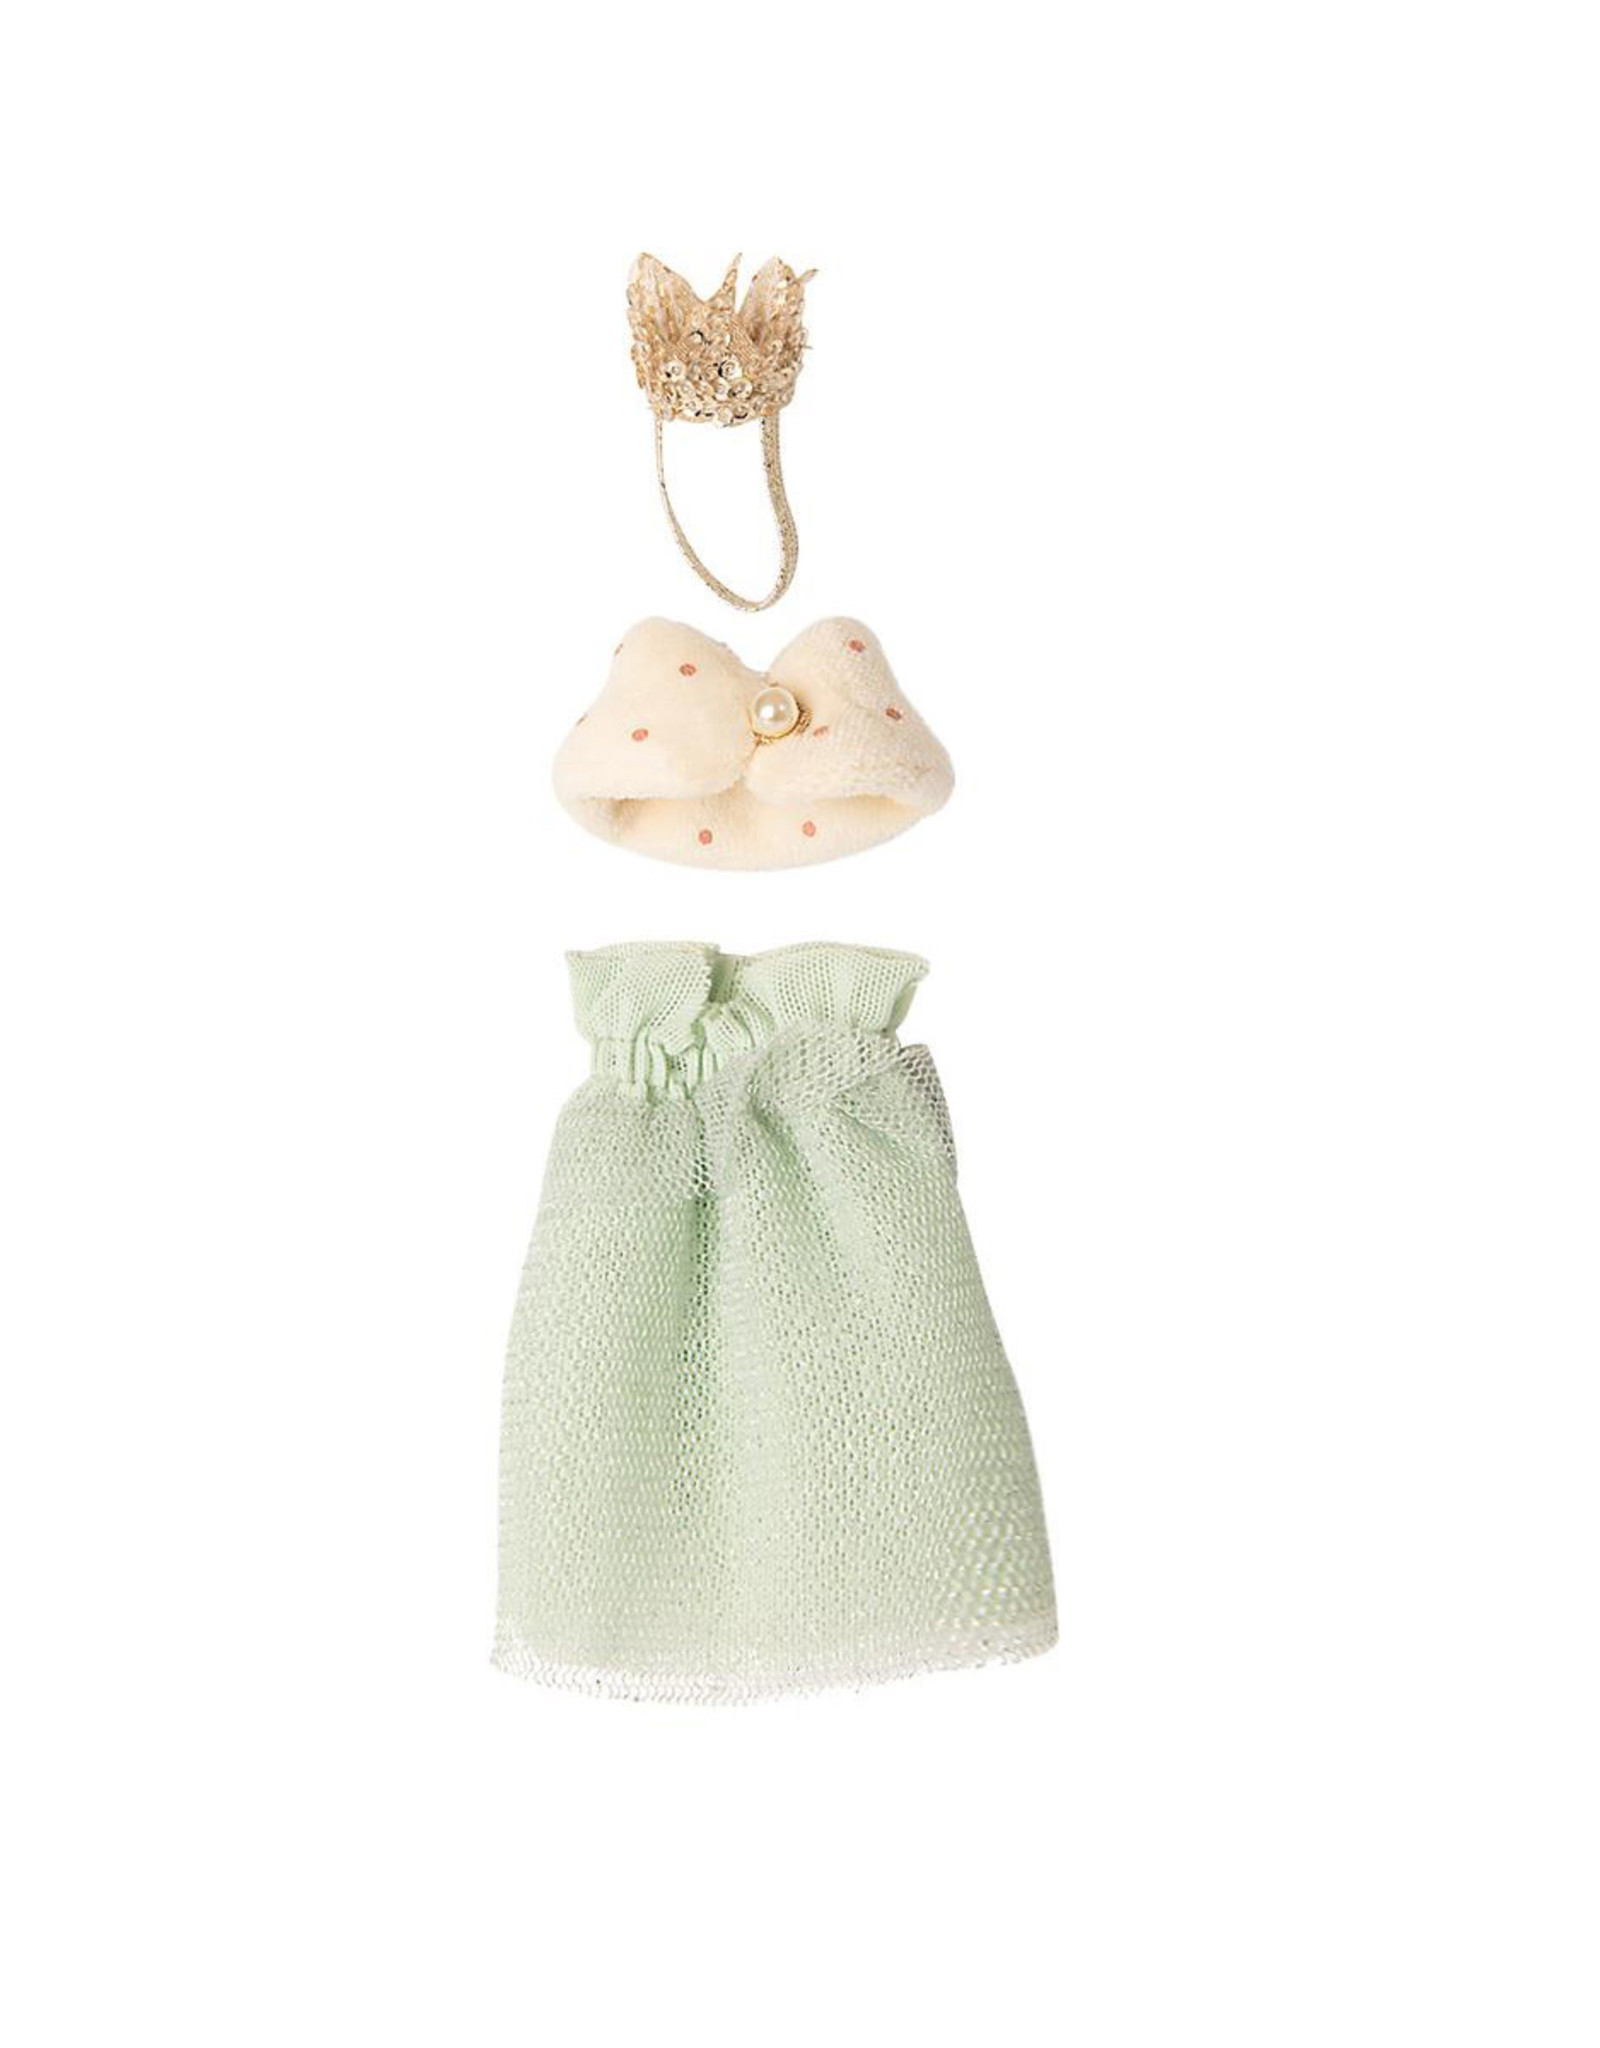 Maileg Queen Outfit - Mint Dress and Shawl